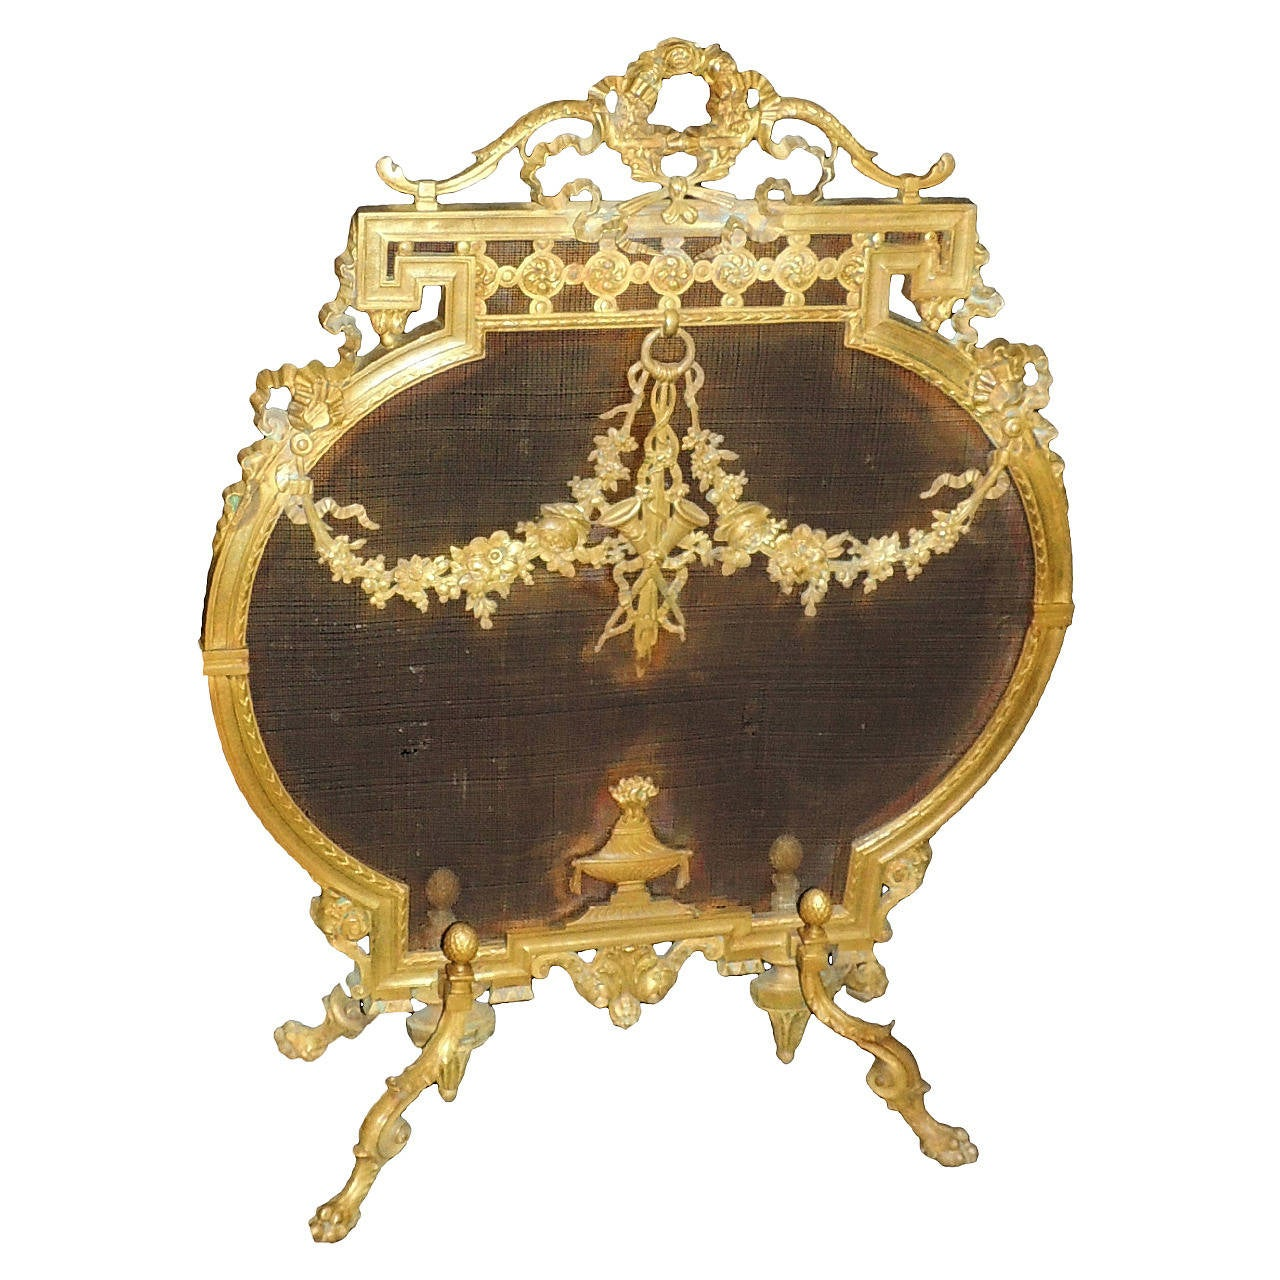 beautiful french dore bronze fireplace screen with ribbons medallion firescreen at 1stdibs. Black Bedroom Furniture Sets. Home Design Ideas